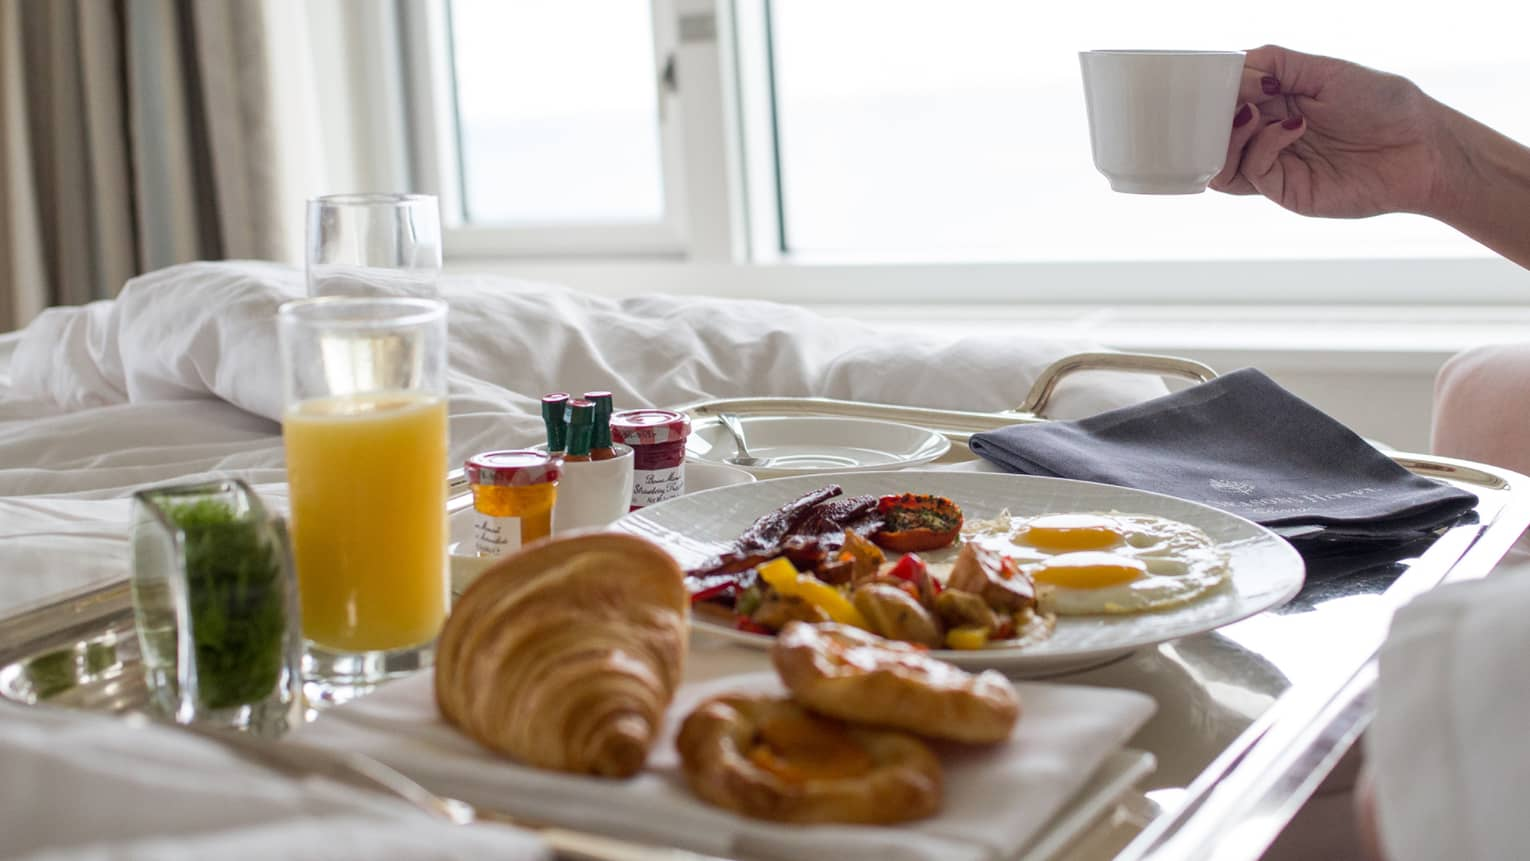 Woman holds coffee mug over in-room dining breakfast tray half with pastries, two fried eggs, roast potatoes, small jam jars